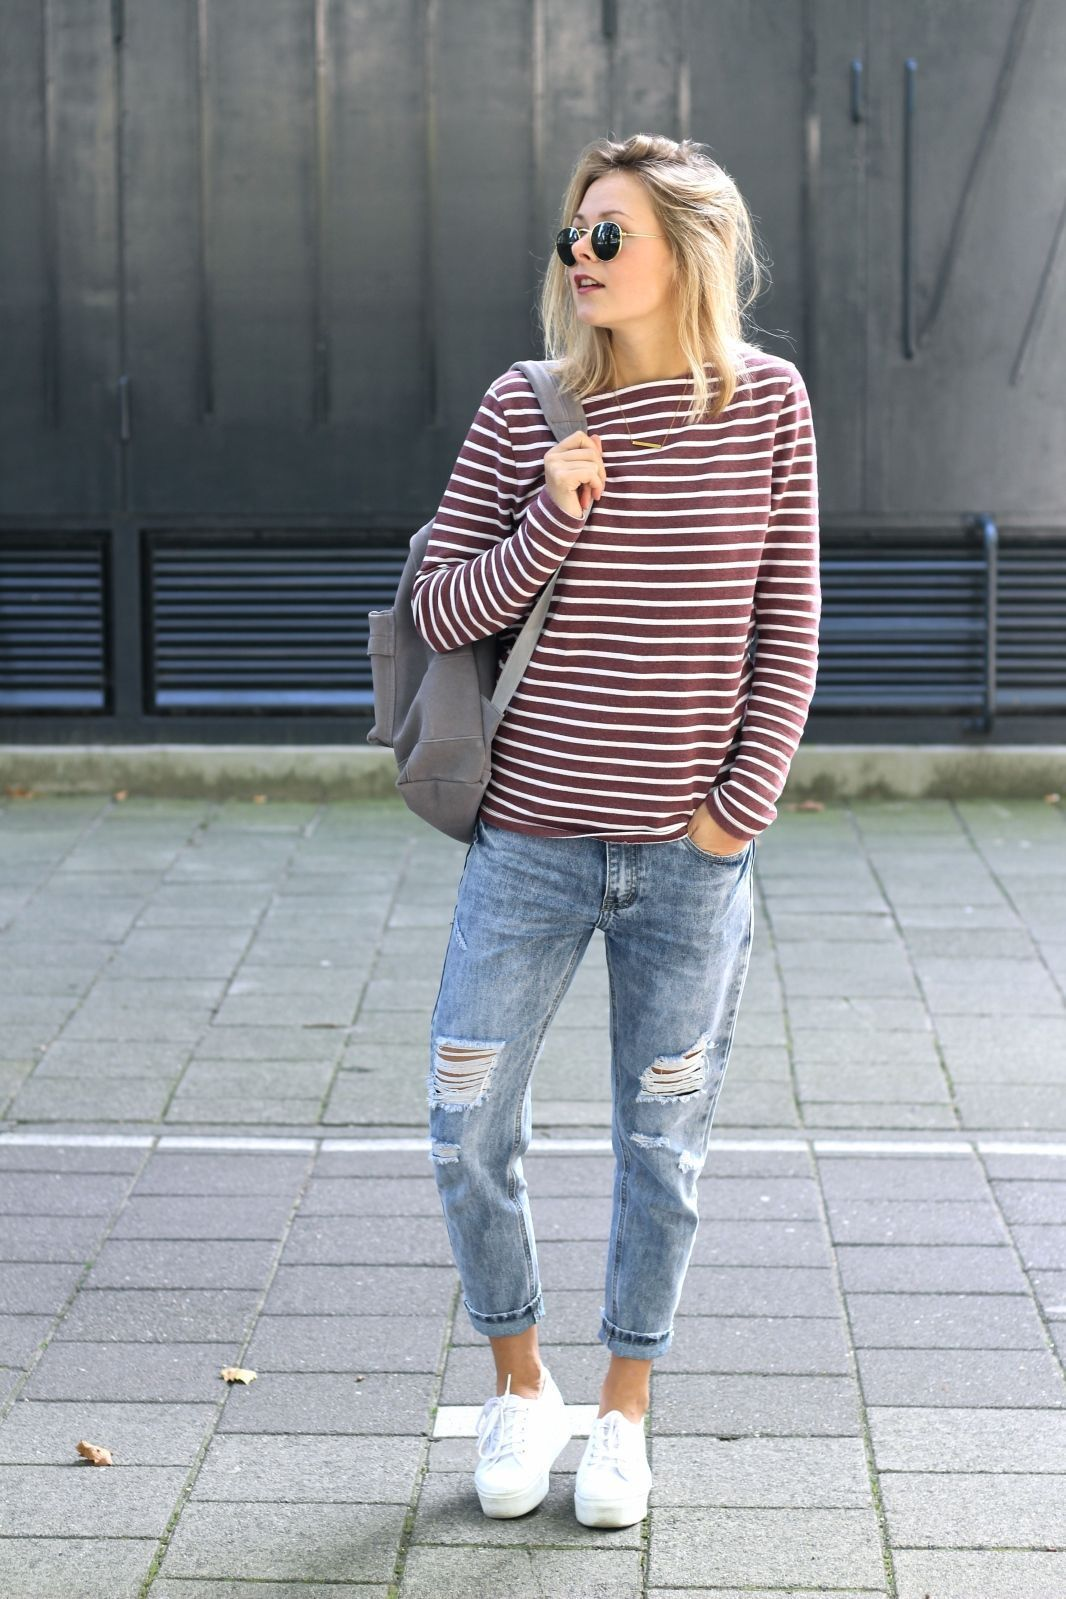 Casual flannel outfits  Cozy sweater boyfriend jeans and platform sneakers  the perfect